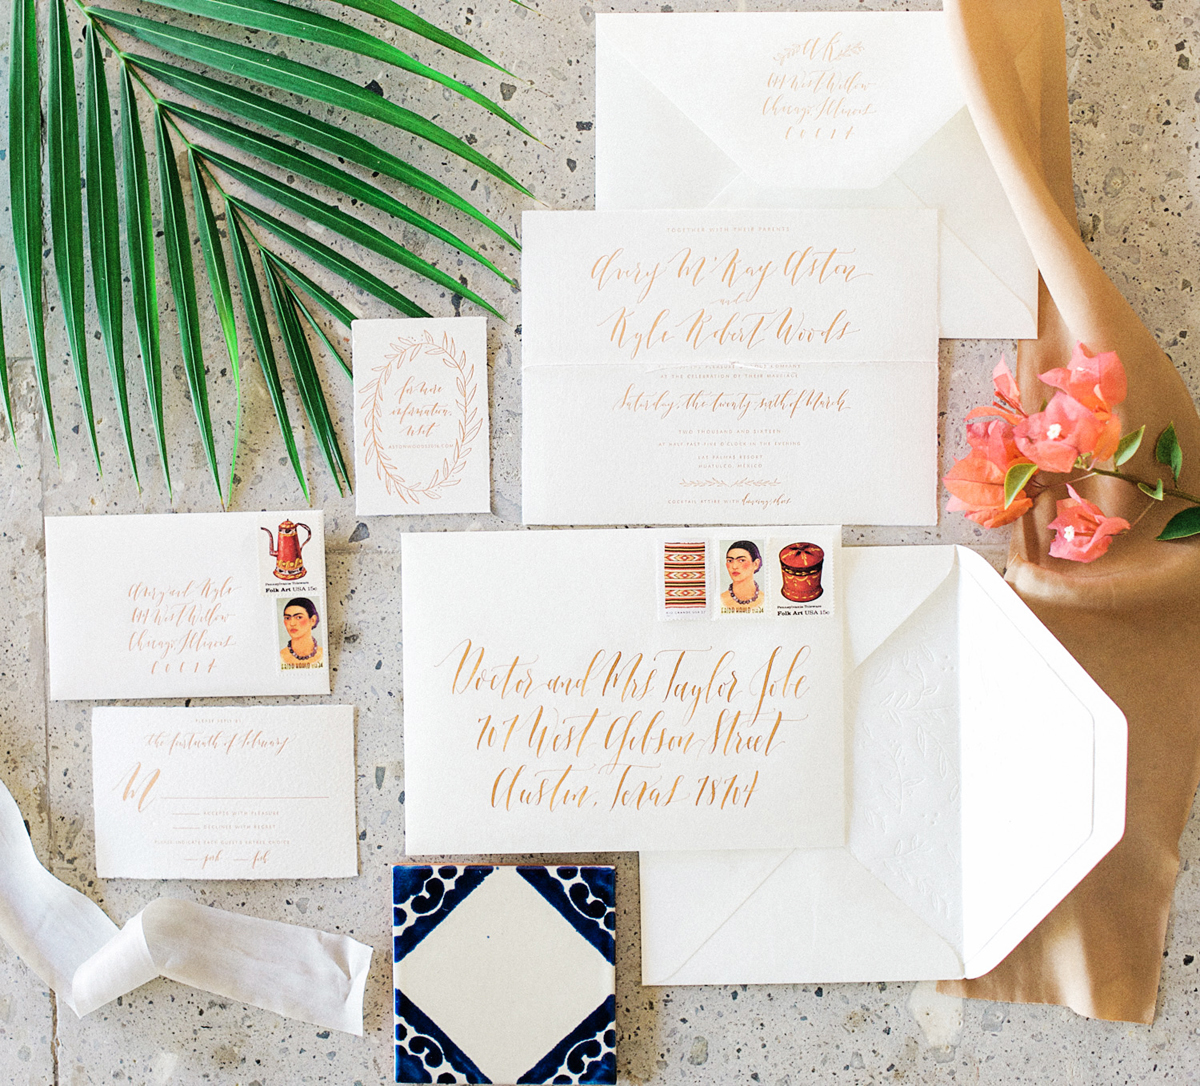 How To Properly Address Your Wedding Invitations